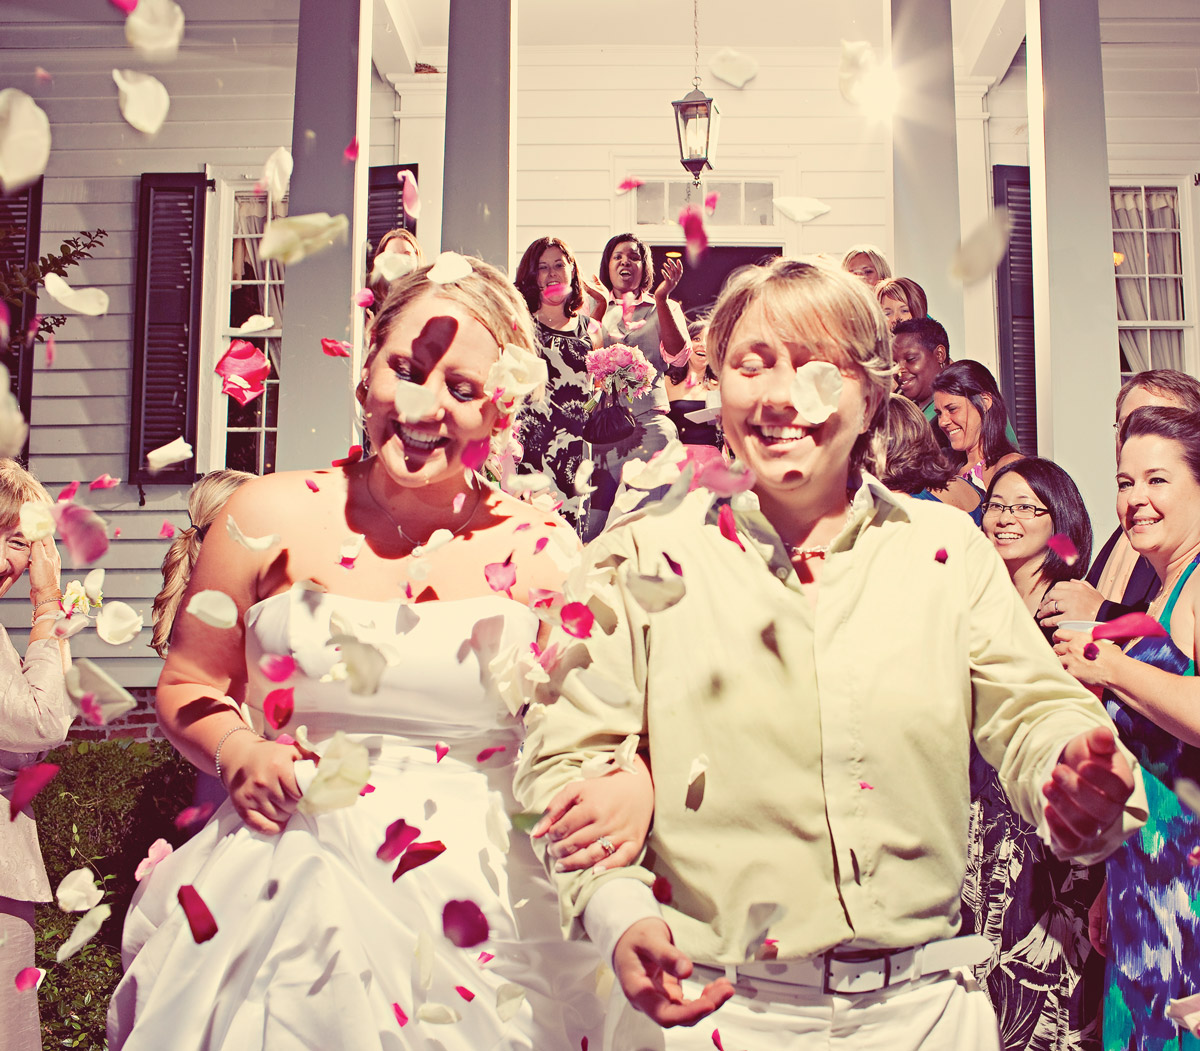 Kirsten and Maria Palladino married on June 13, 2009 in Decatur.